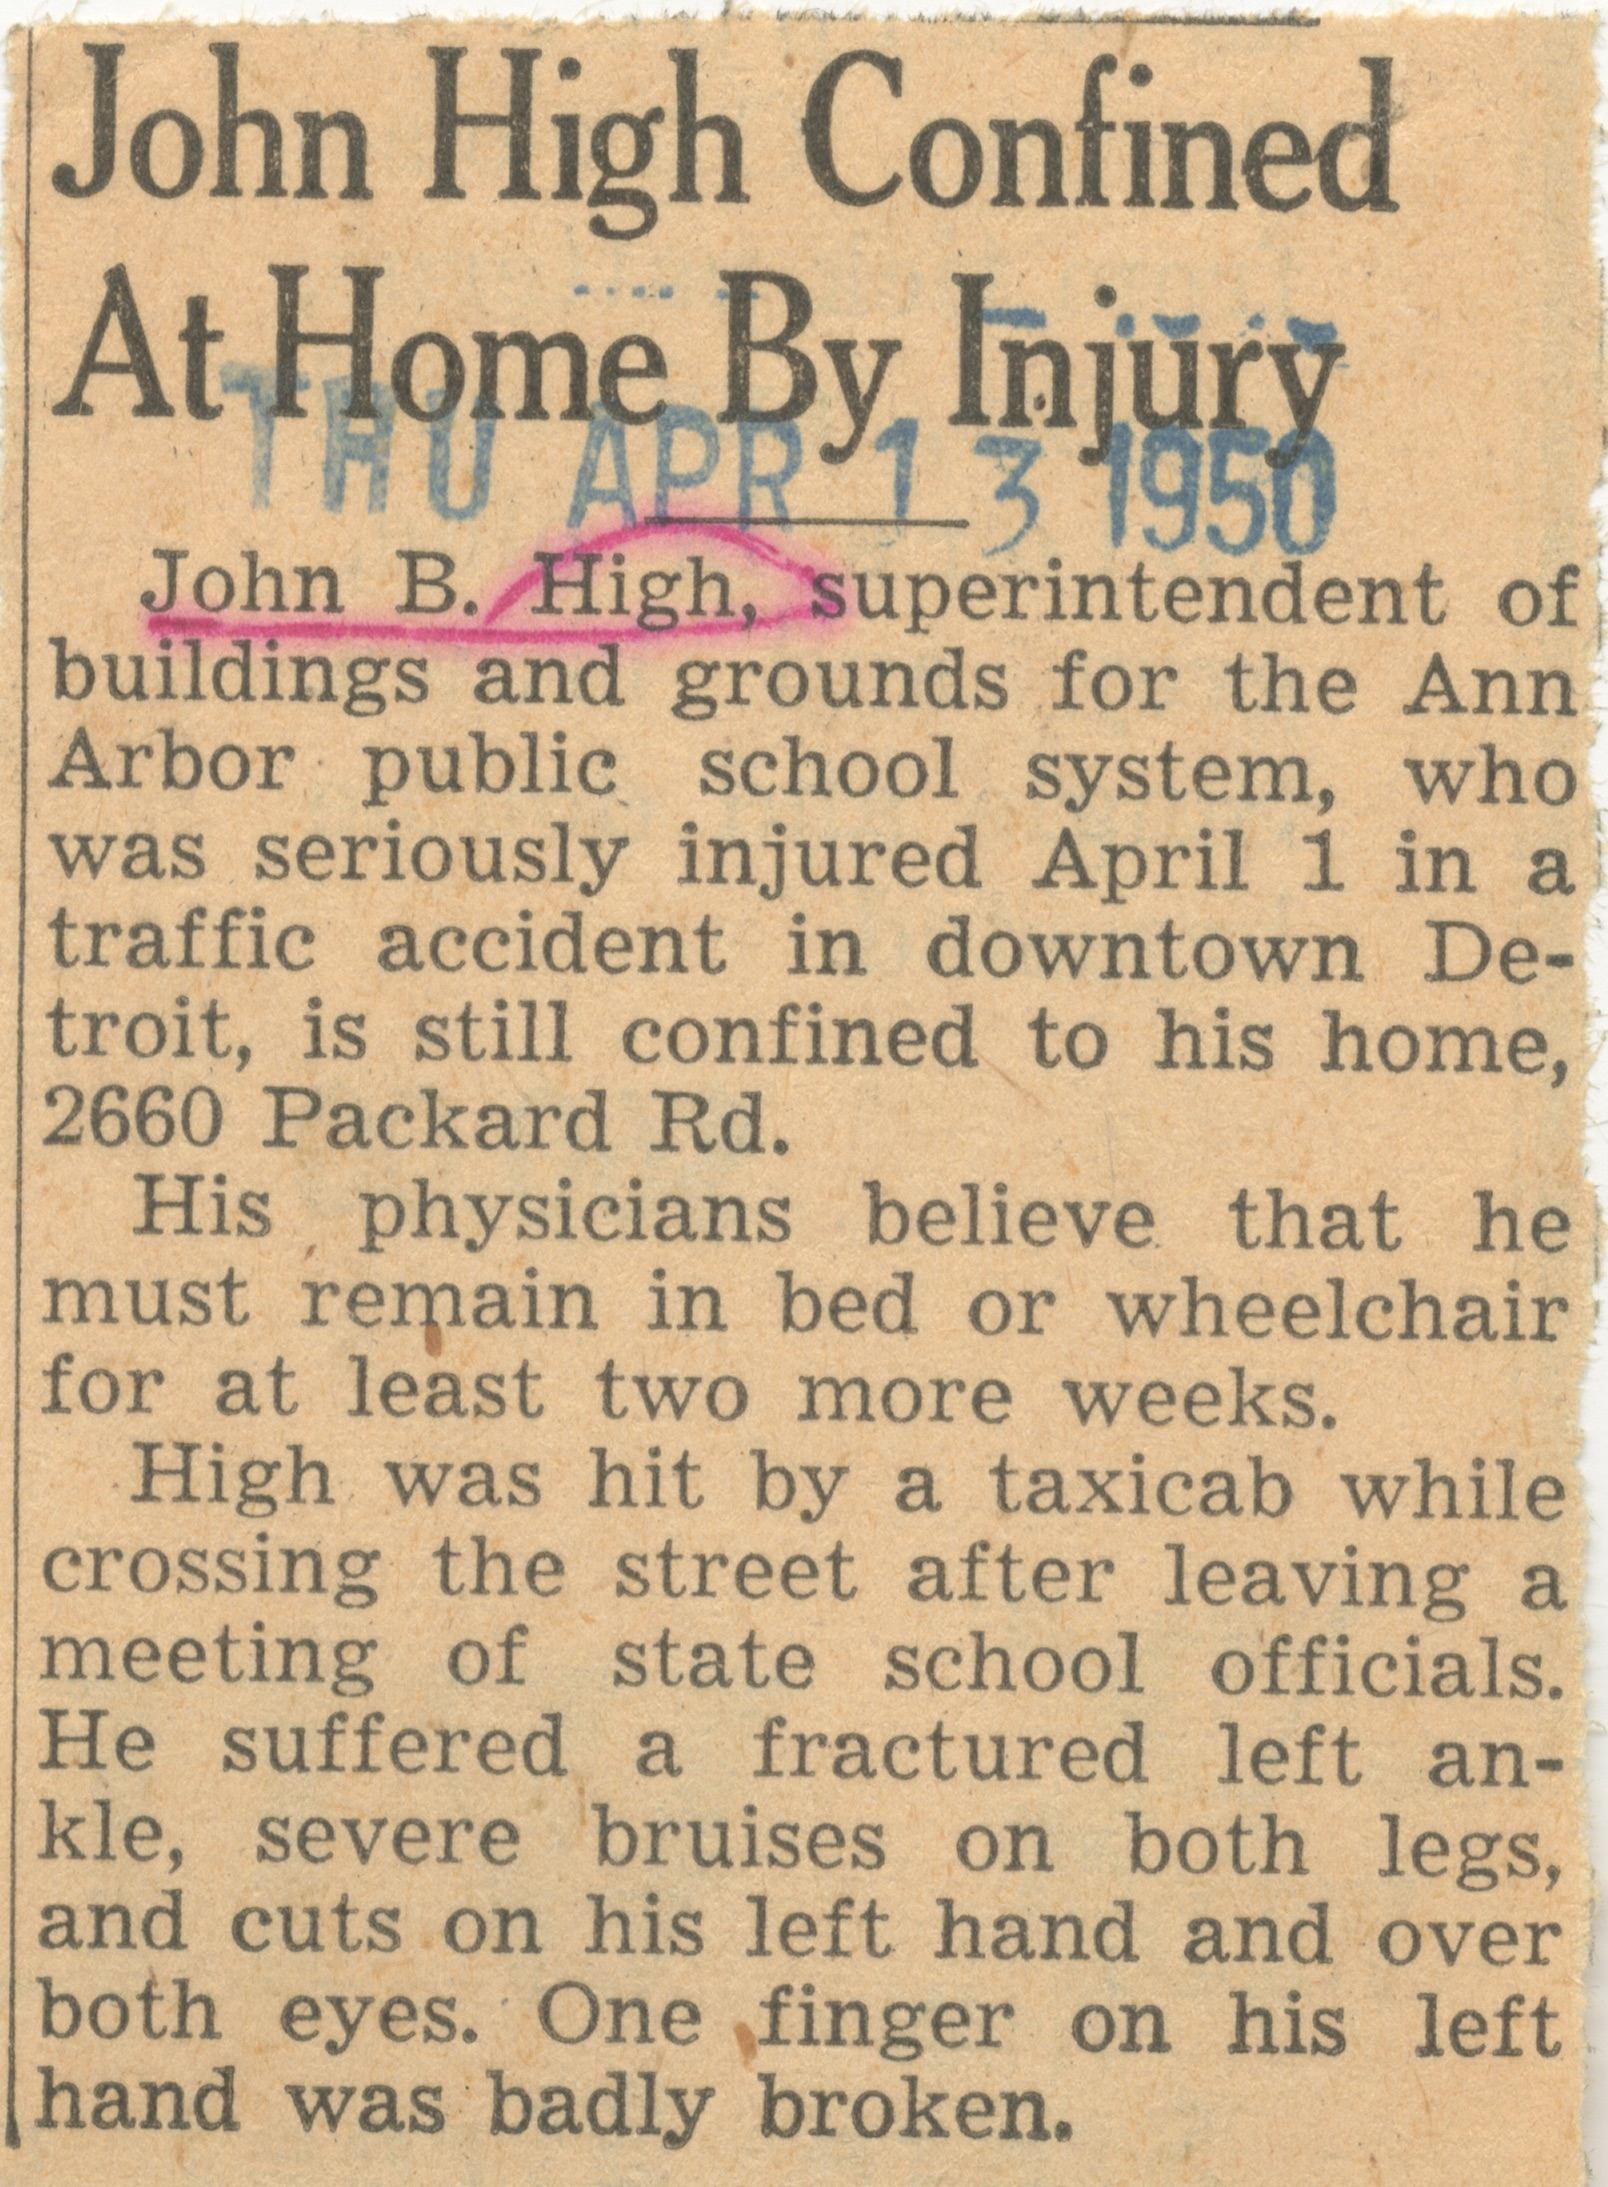 John High Confined At Home By Injury image